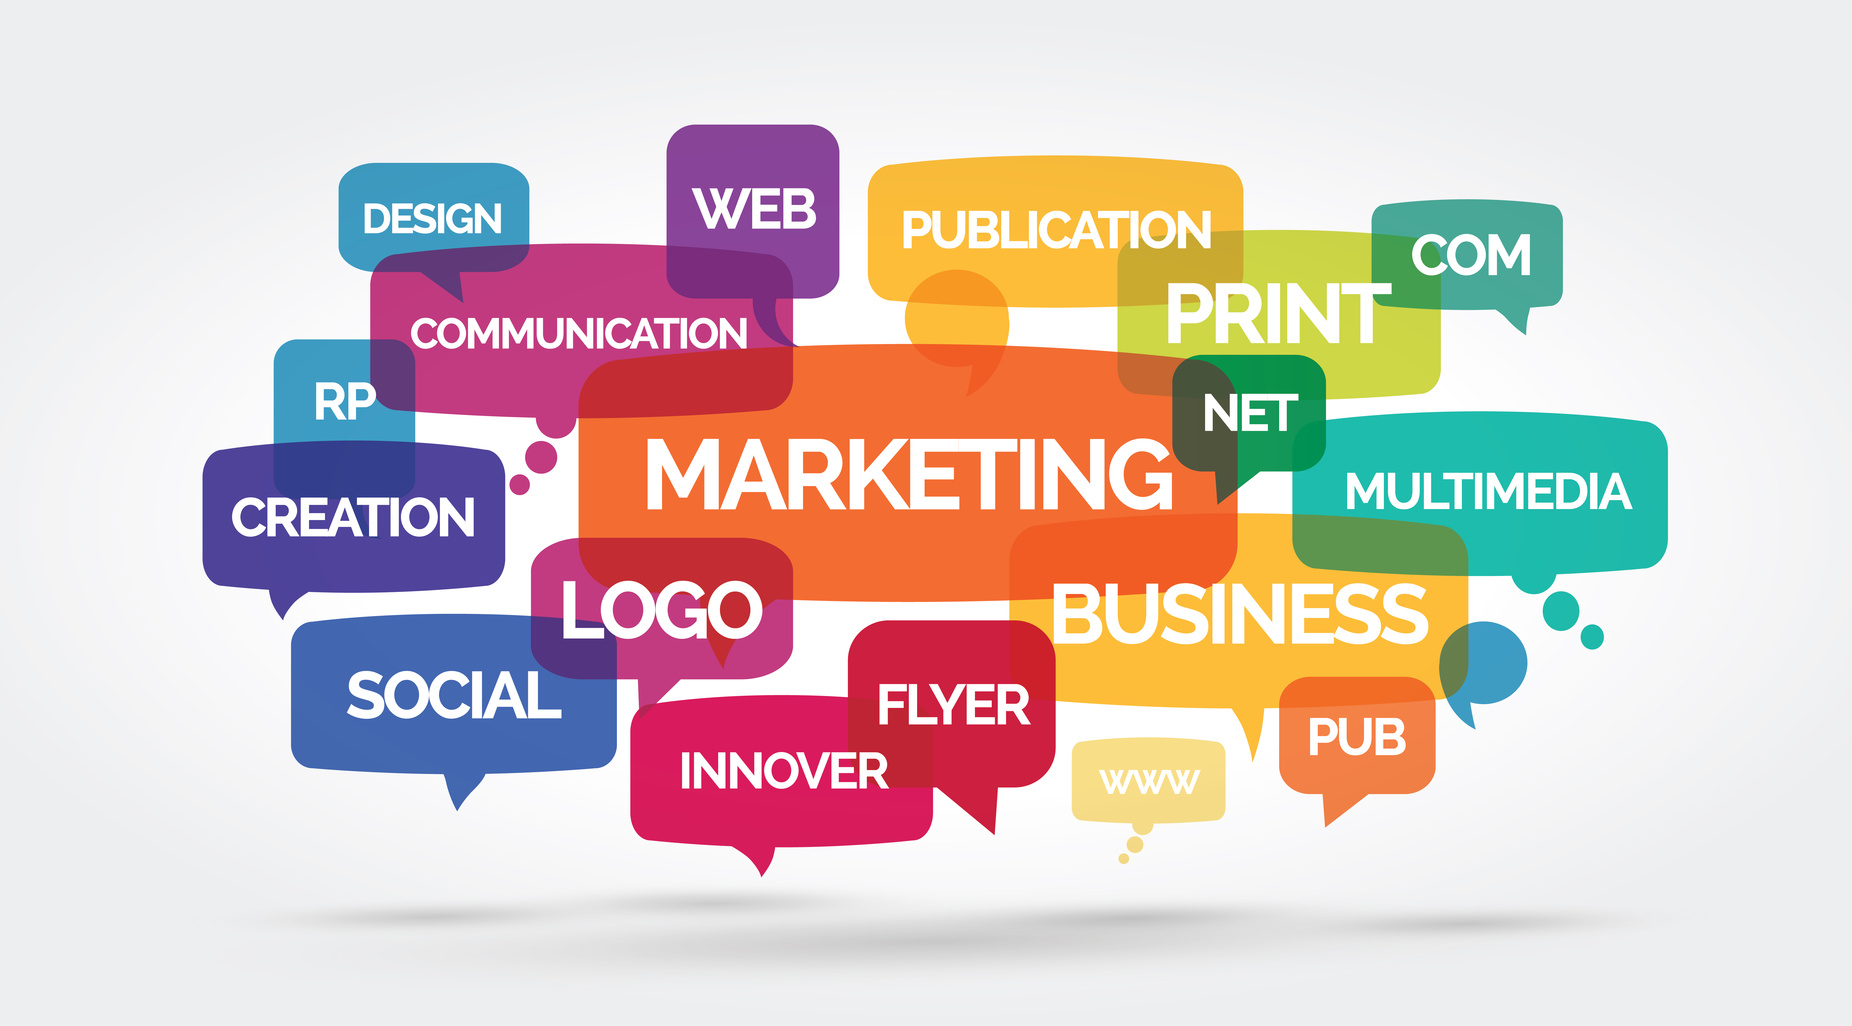 creating a marketing - How to choose a marketing agency? Blog I Socjal Media Blog Nakatomi Advertising Agency